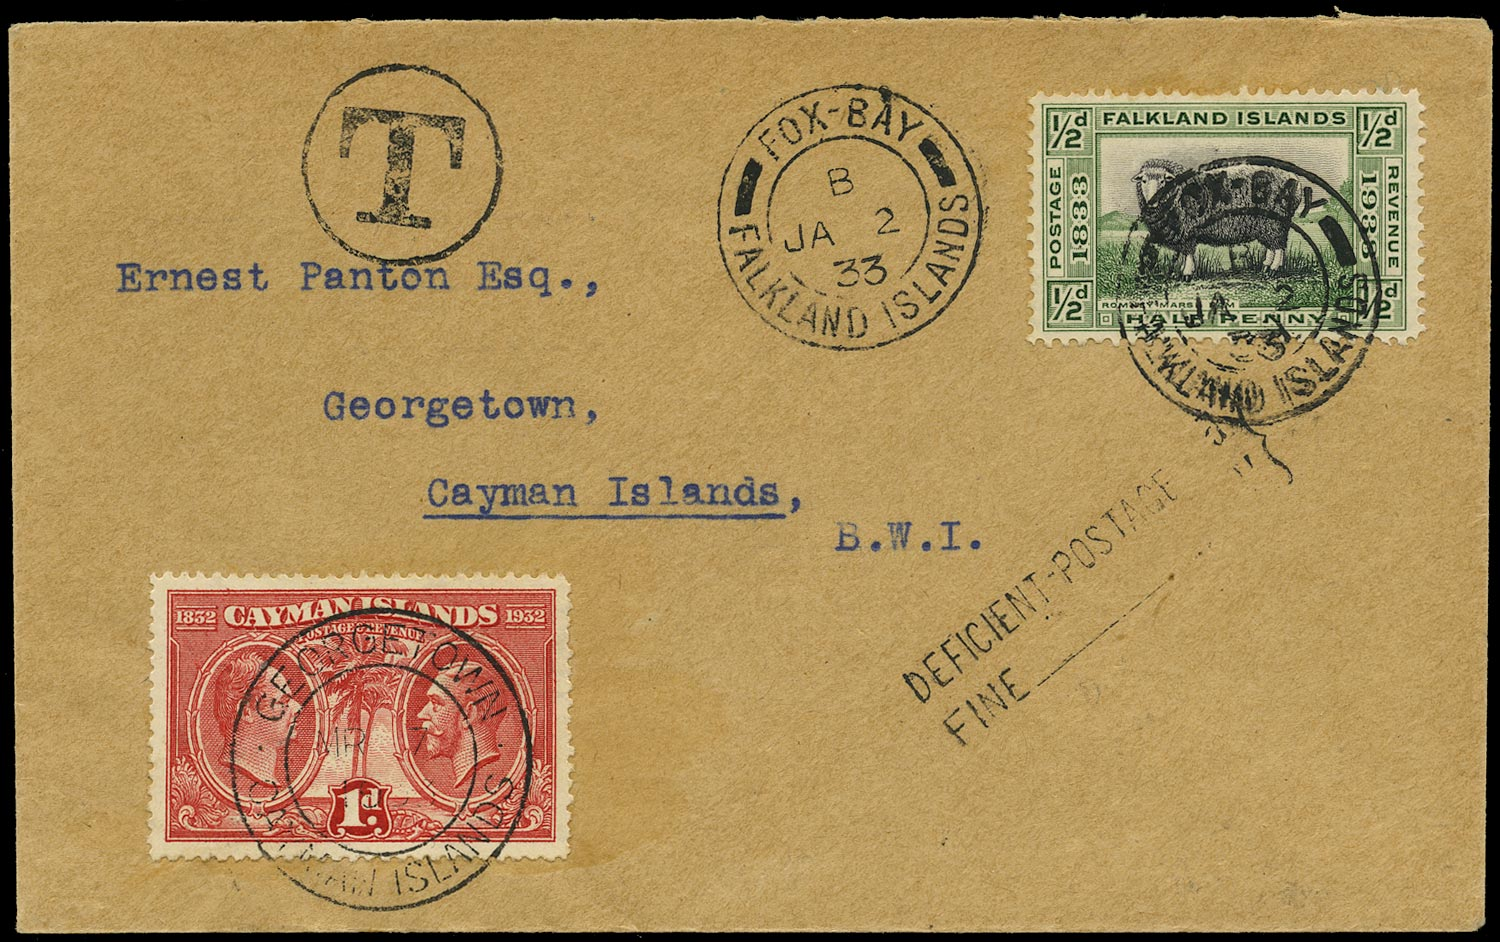 FALKLAND ISLANDS 1933  SG127 Cover from Fox Bay to Cayman Islands with Centenary ½d sheep